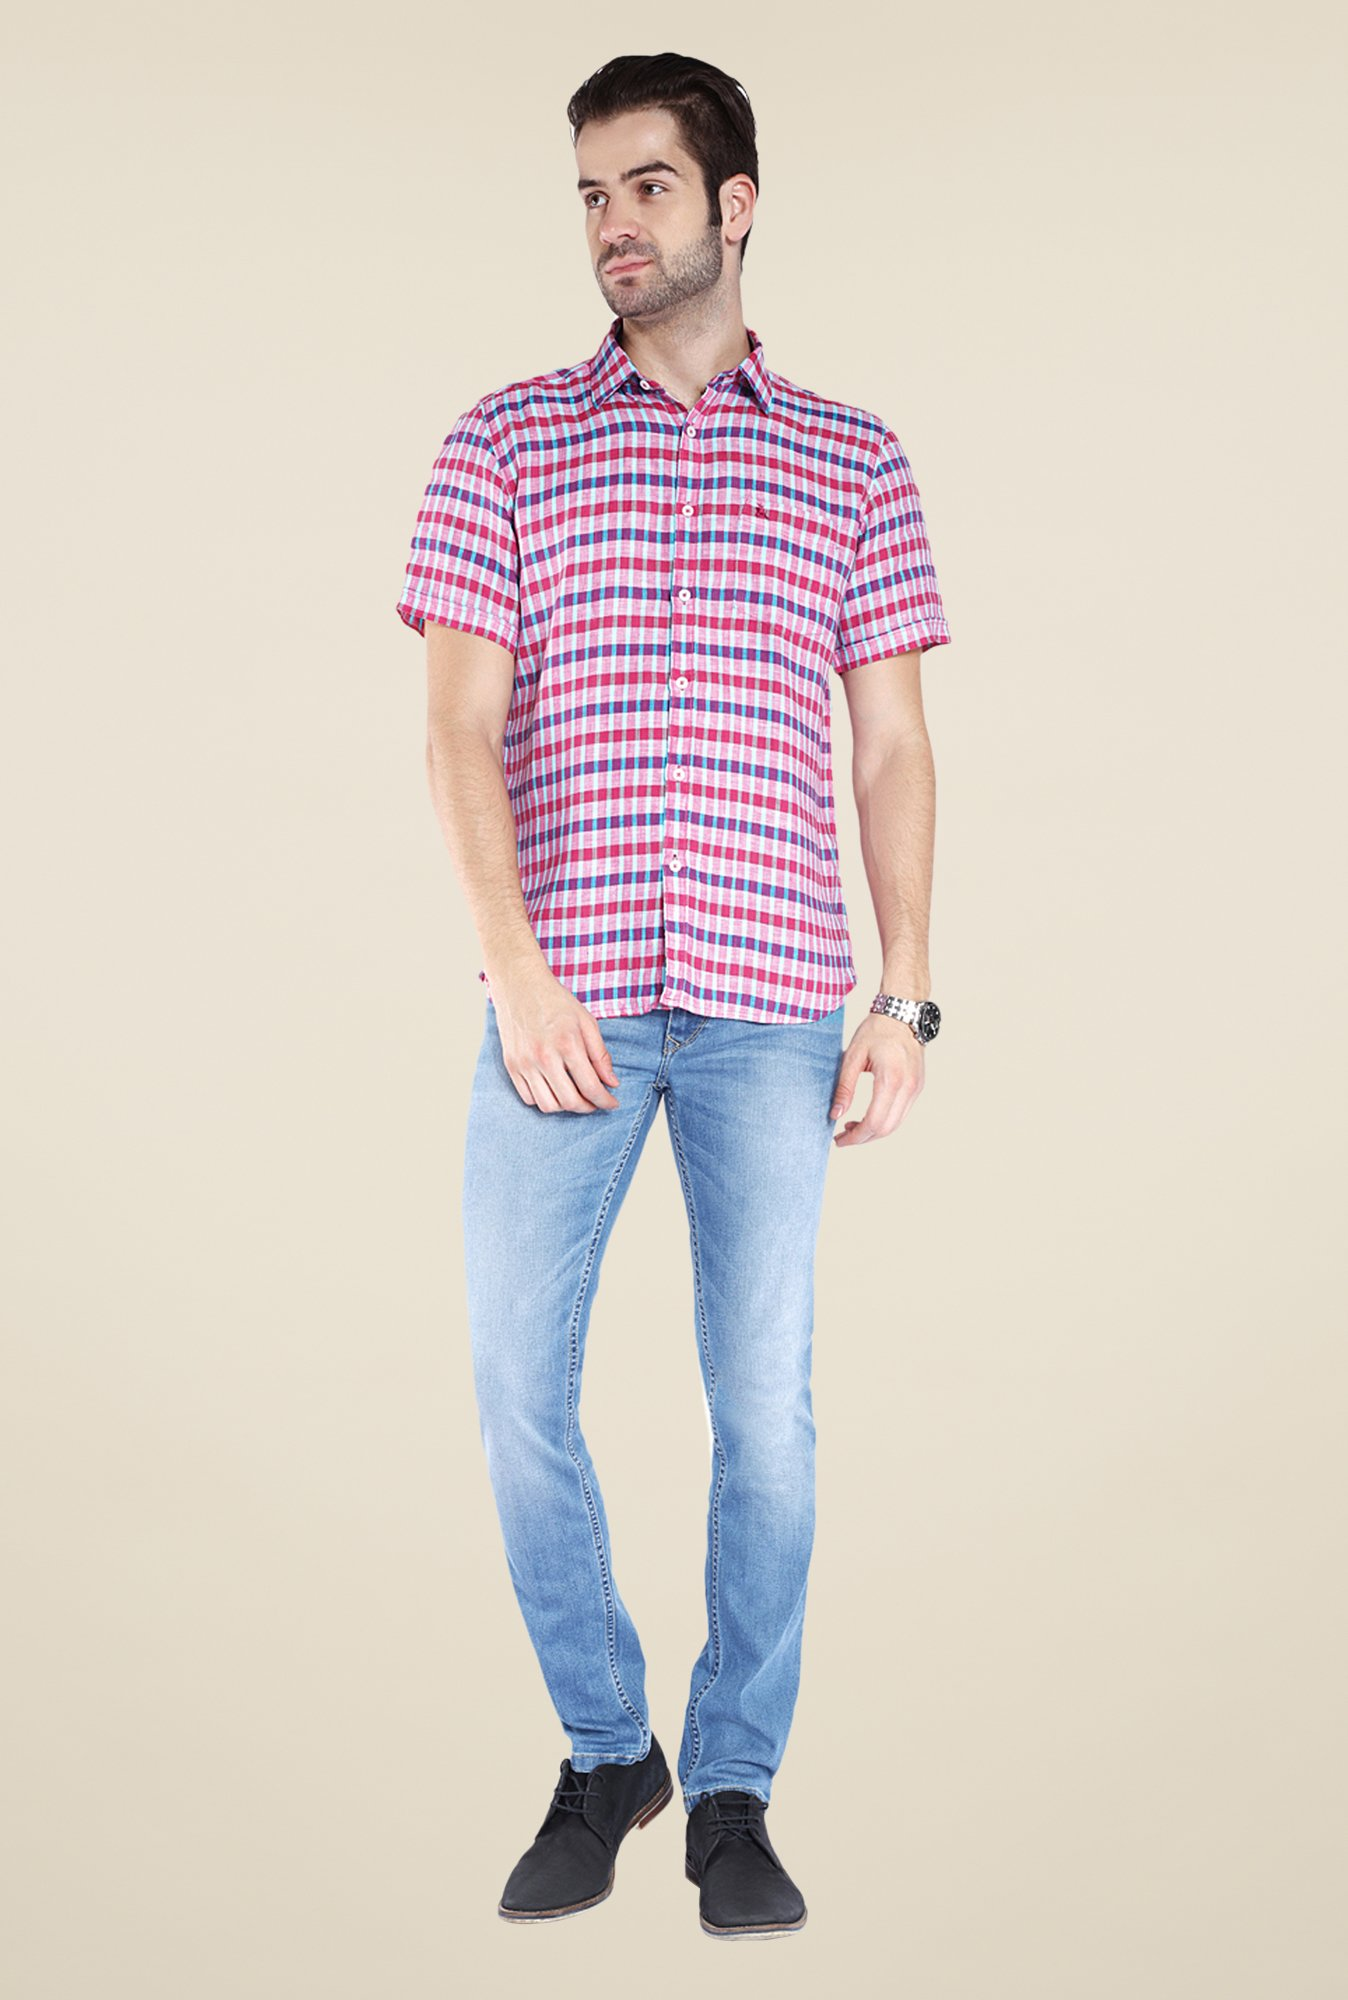 Parx Purple Checks Linen Shirt